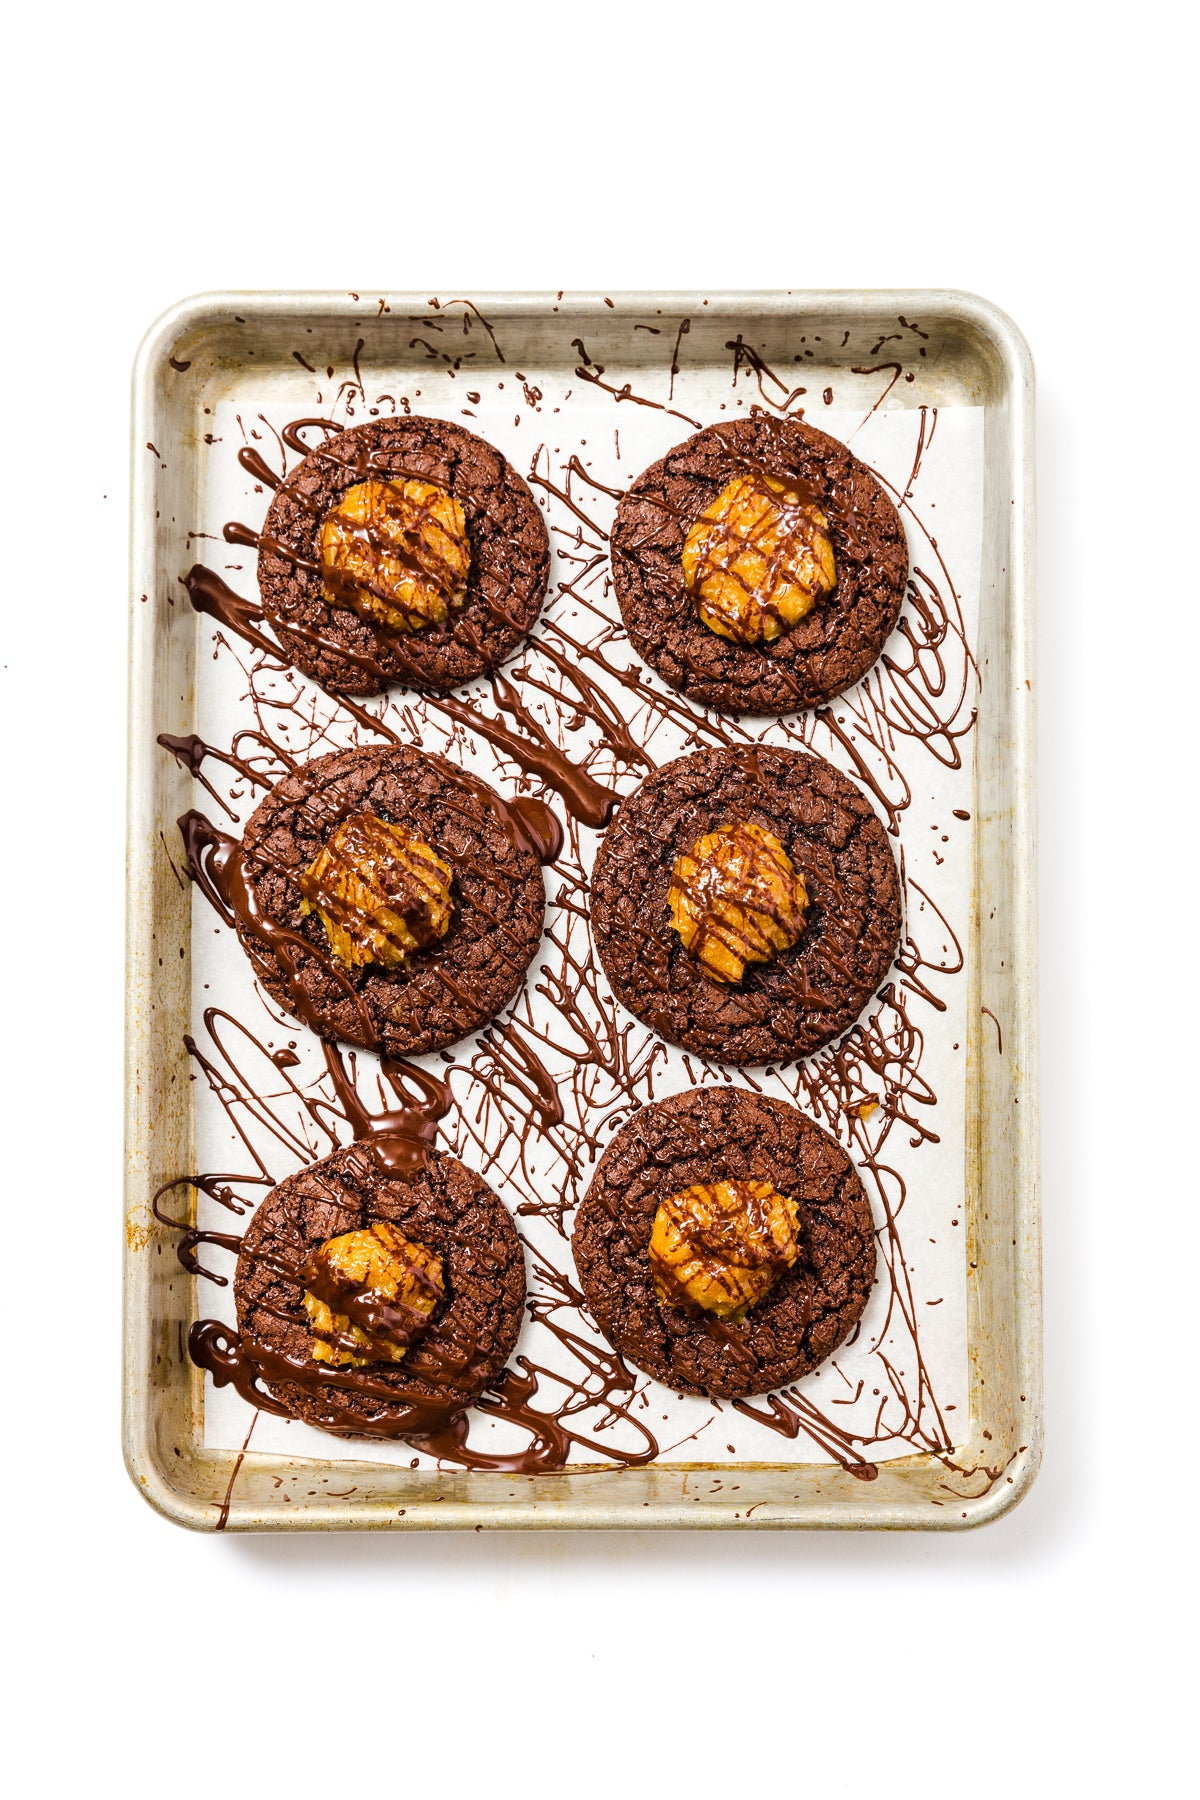 Image of top of baking sheet with six final Miss Jones Baking Co Coconut Caramel Brownie Cookies